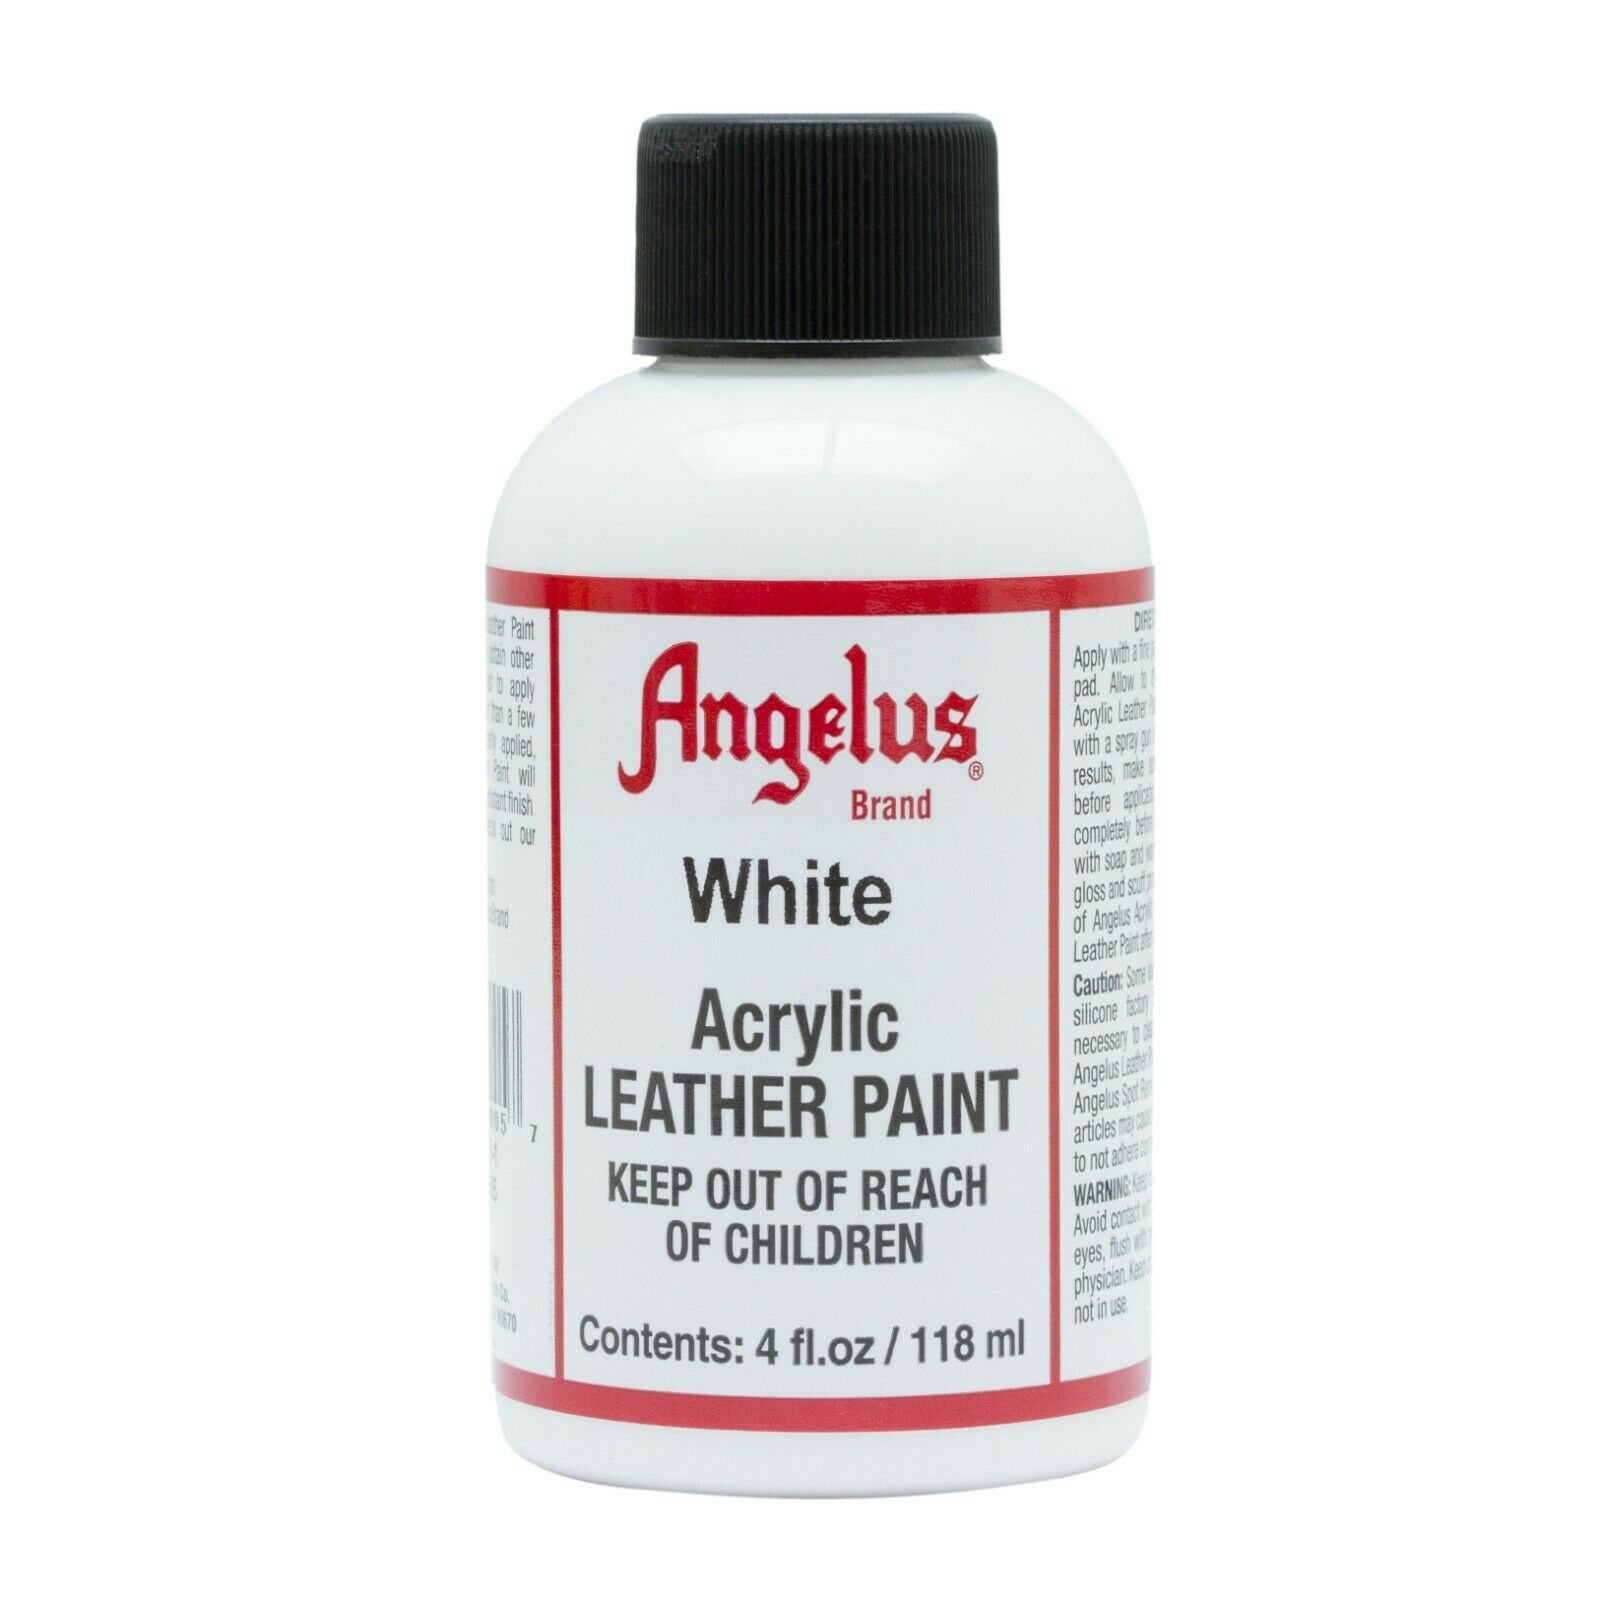 Angelus White acrylic leather paint / Dye 4 oz bottle NEW For Shoes Bags Boots Crafts